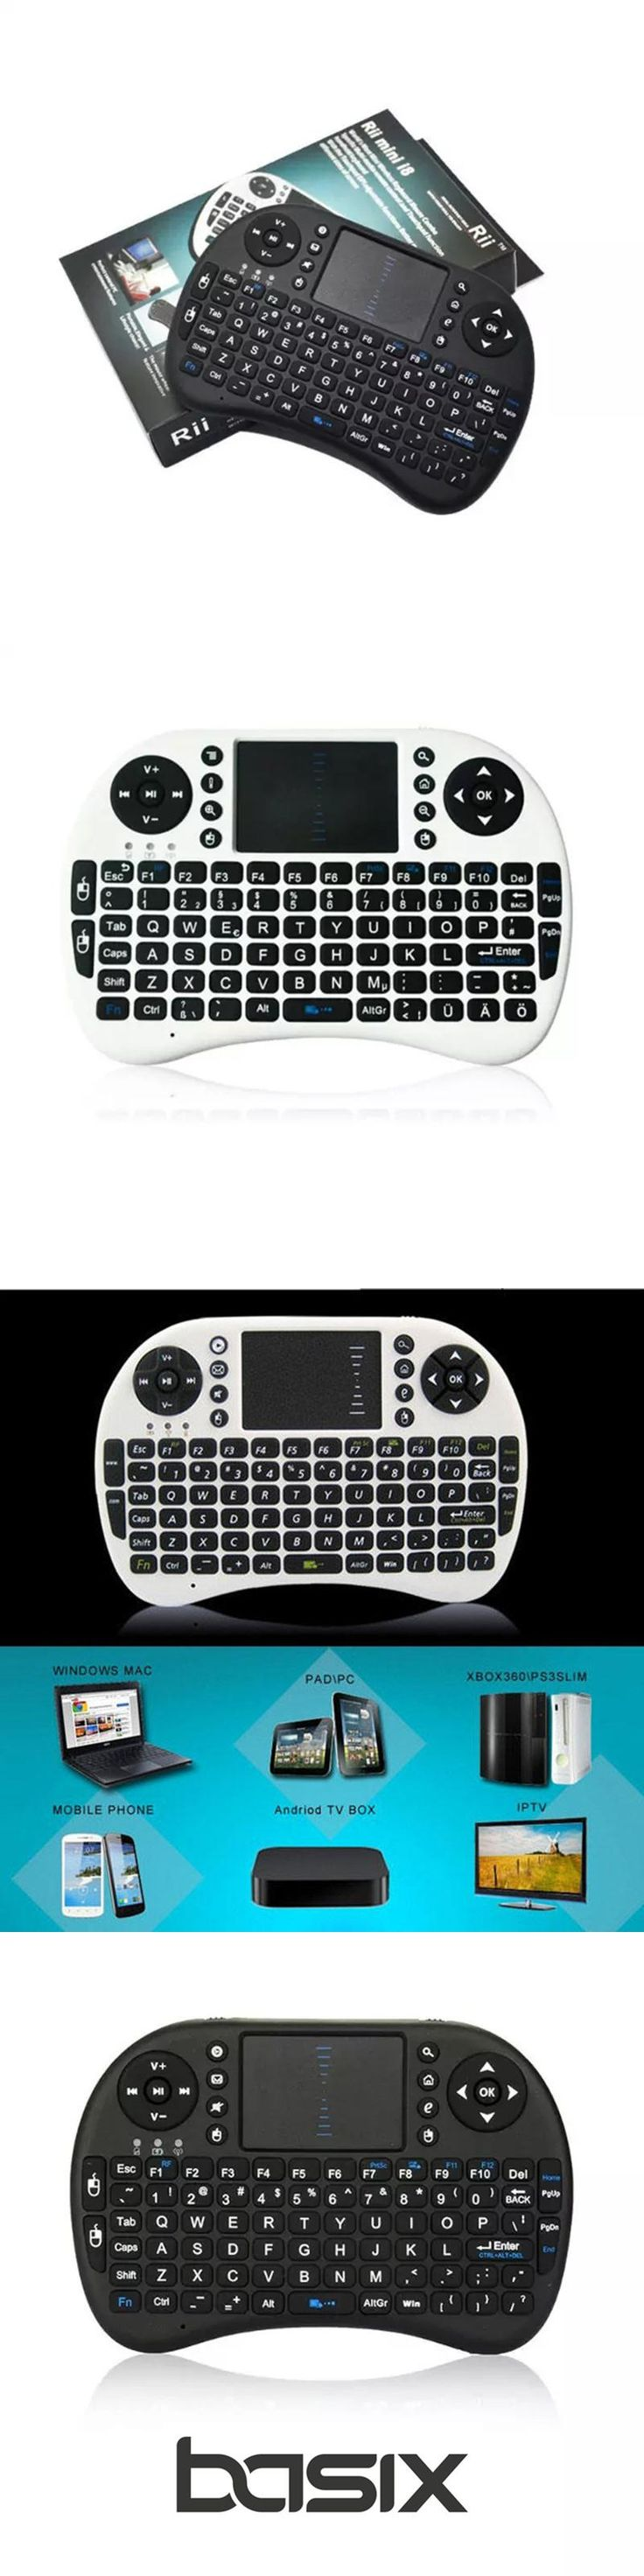 basix New 2.4G Mini USB Wireless  Keyboard Touchpad & Air Fly Mouse Remote Control for Android Windows TV Box Smart Phone